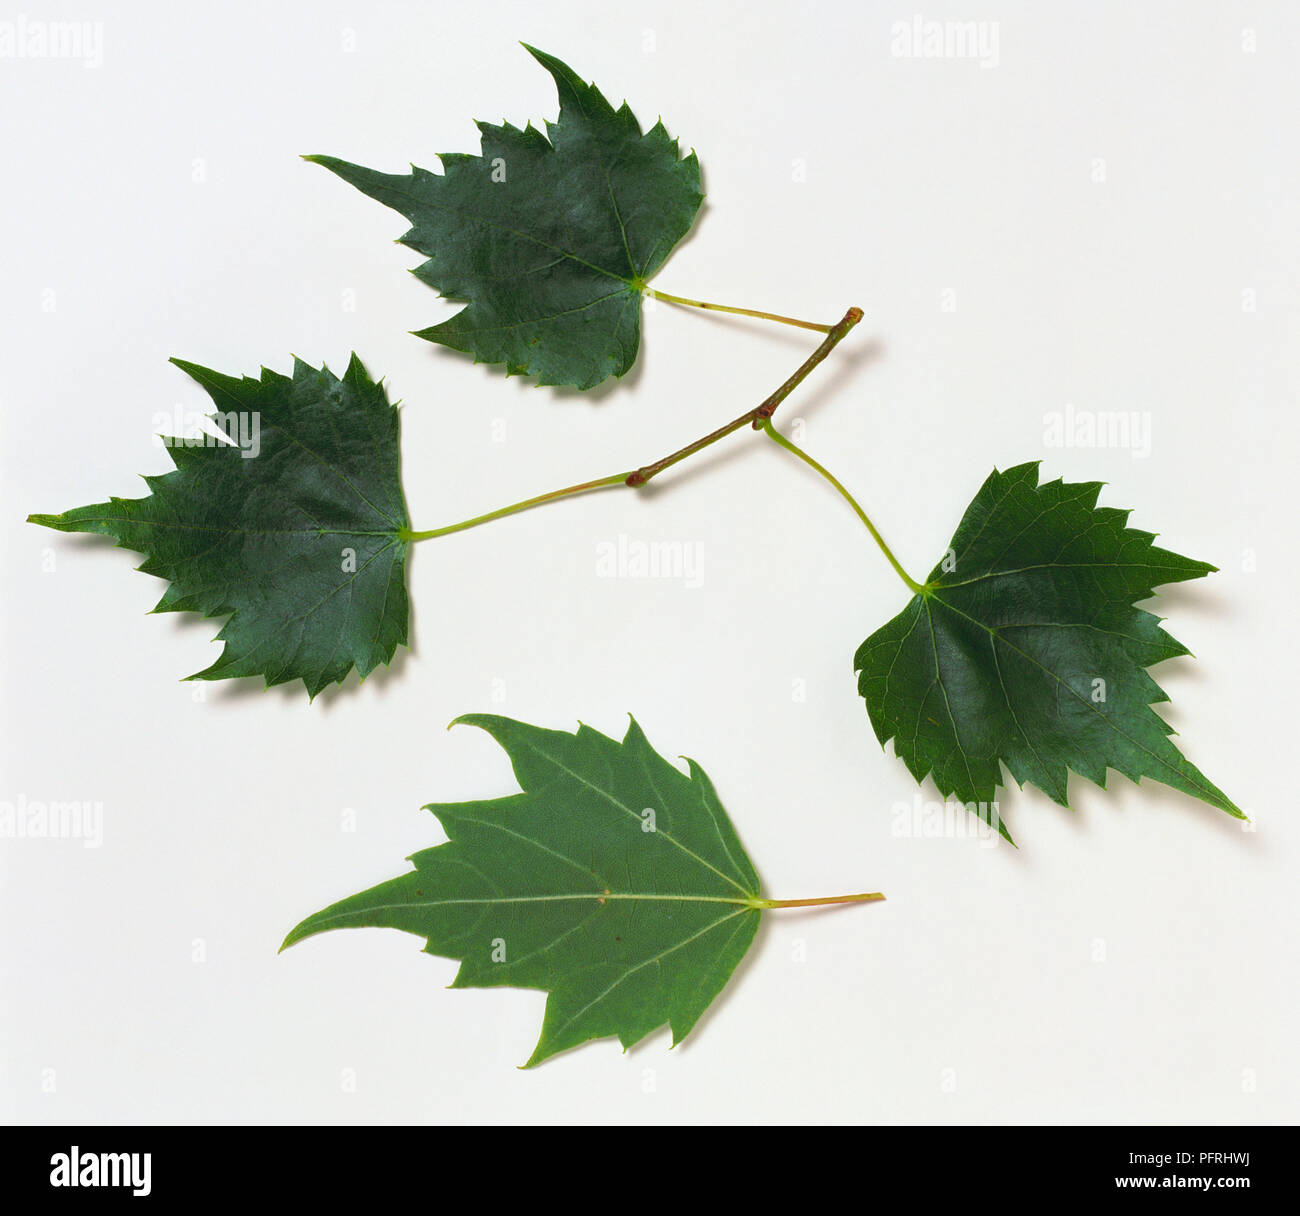 Tilia mongolica (Mongolian lime), stem with three leaves, and underside of a leaf Stock Photo